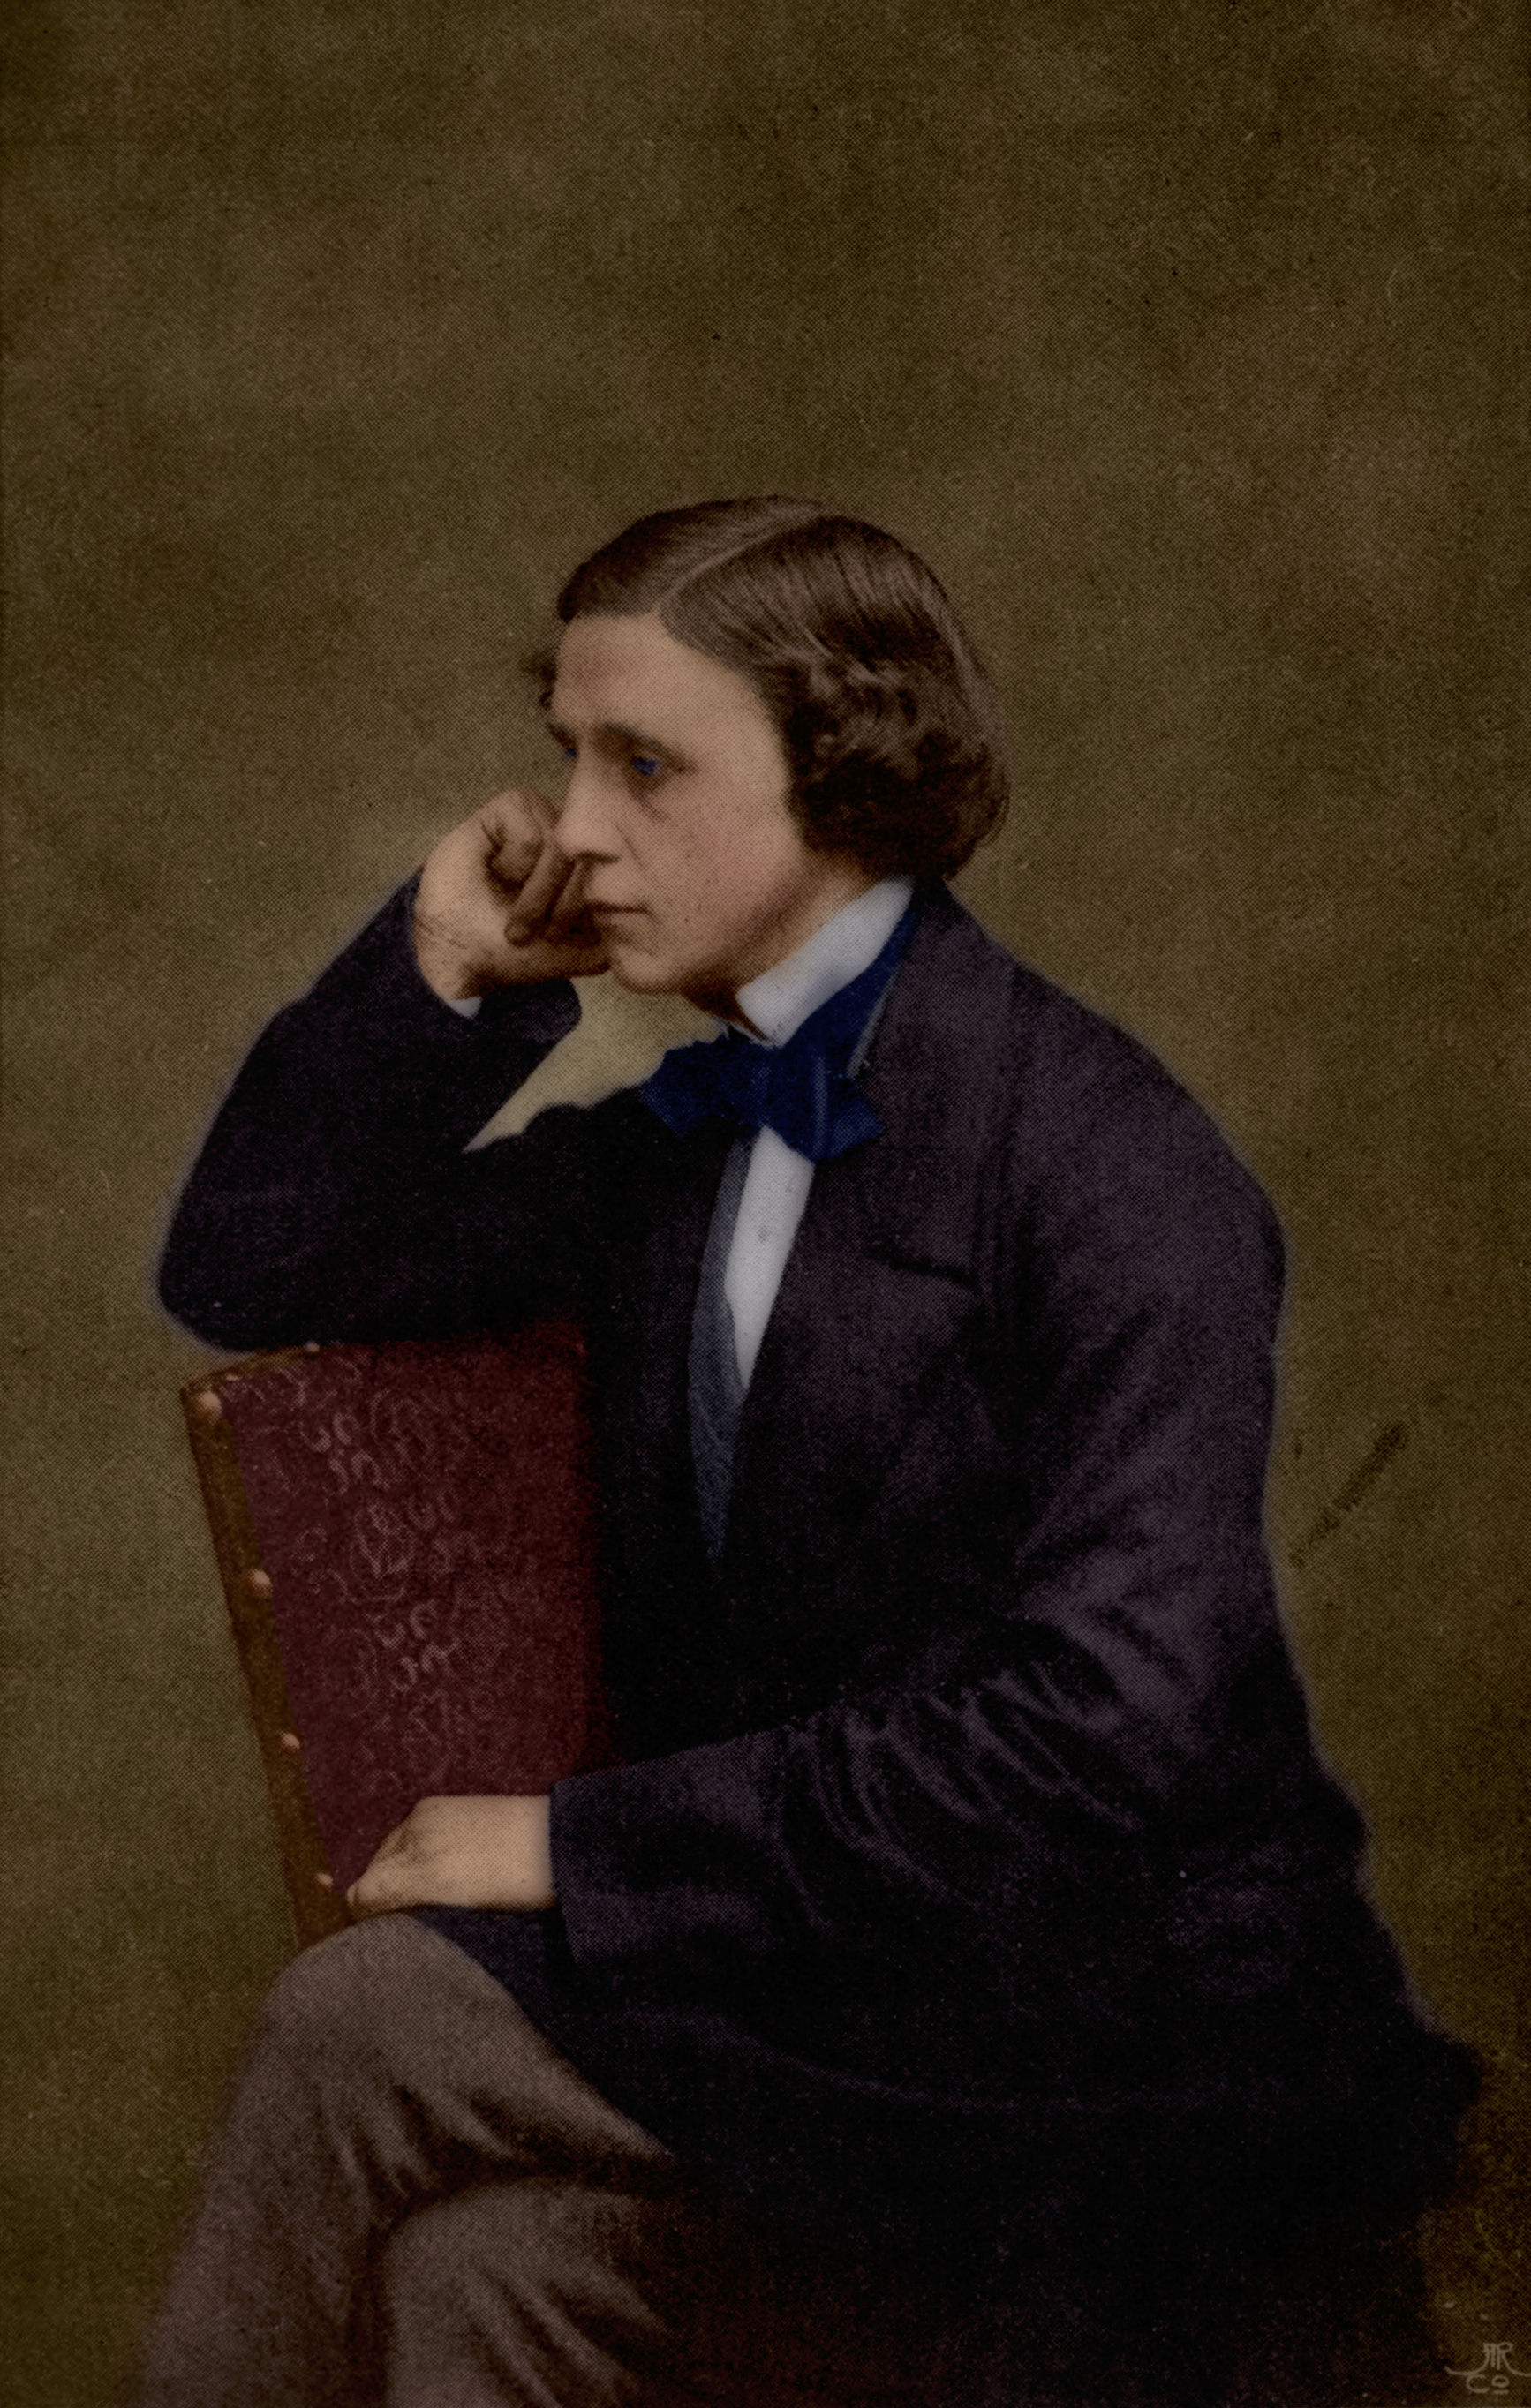 lewis carrol The reverend charles lutwidge dodgson, better known by the pen name lewis carroll, was an english author, mathematician, logician, anglican clergyman and.